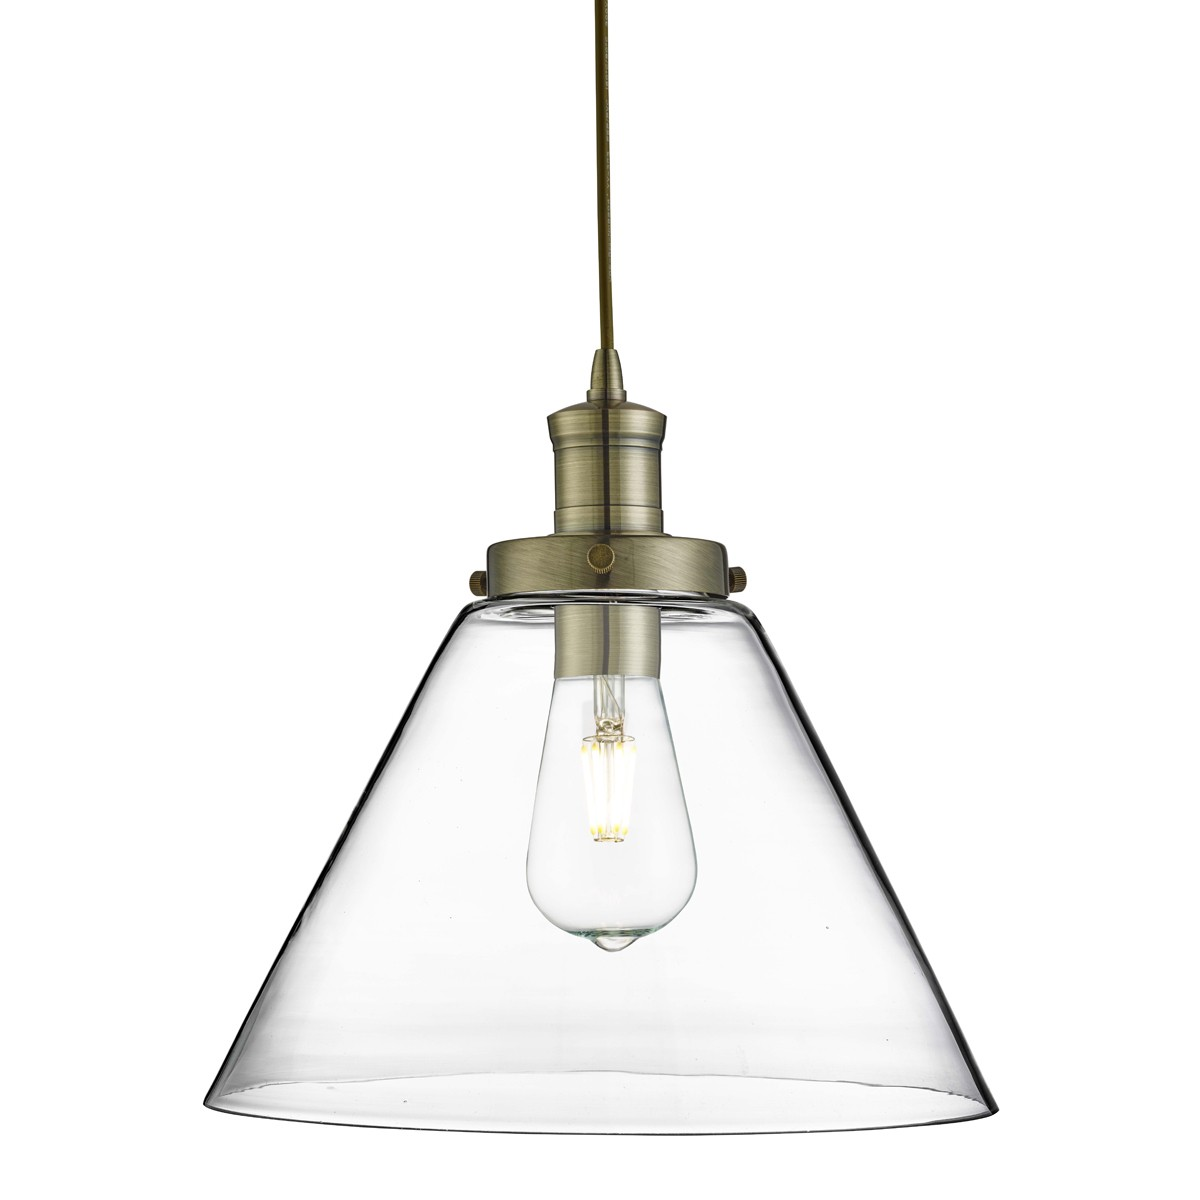 PYRAMID ANTIQUE BRASS PENDANT LIGHT WITH CLEAR GLASS SHADE u2013 3228AB  sc 1 st  Stanways Stoves and Lights & PYRAMID CHROME PENDANT LIGHT WITH CLEAR GLASS SHADE u2013 3228CC ... azcodes.com